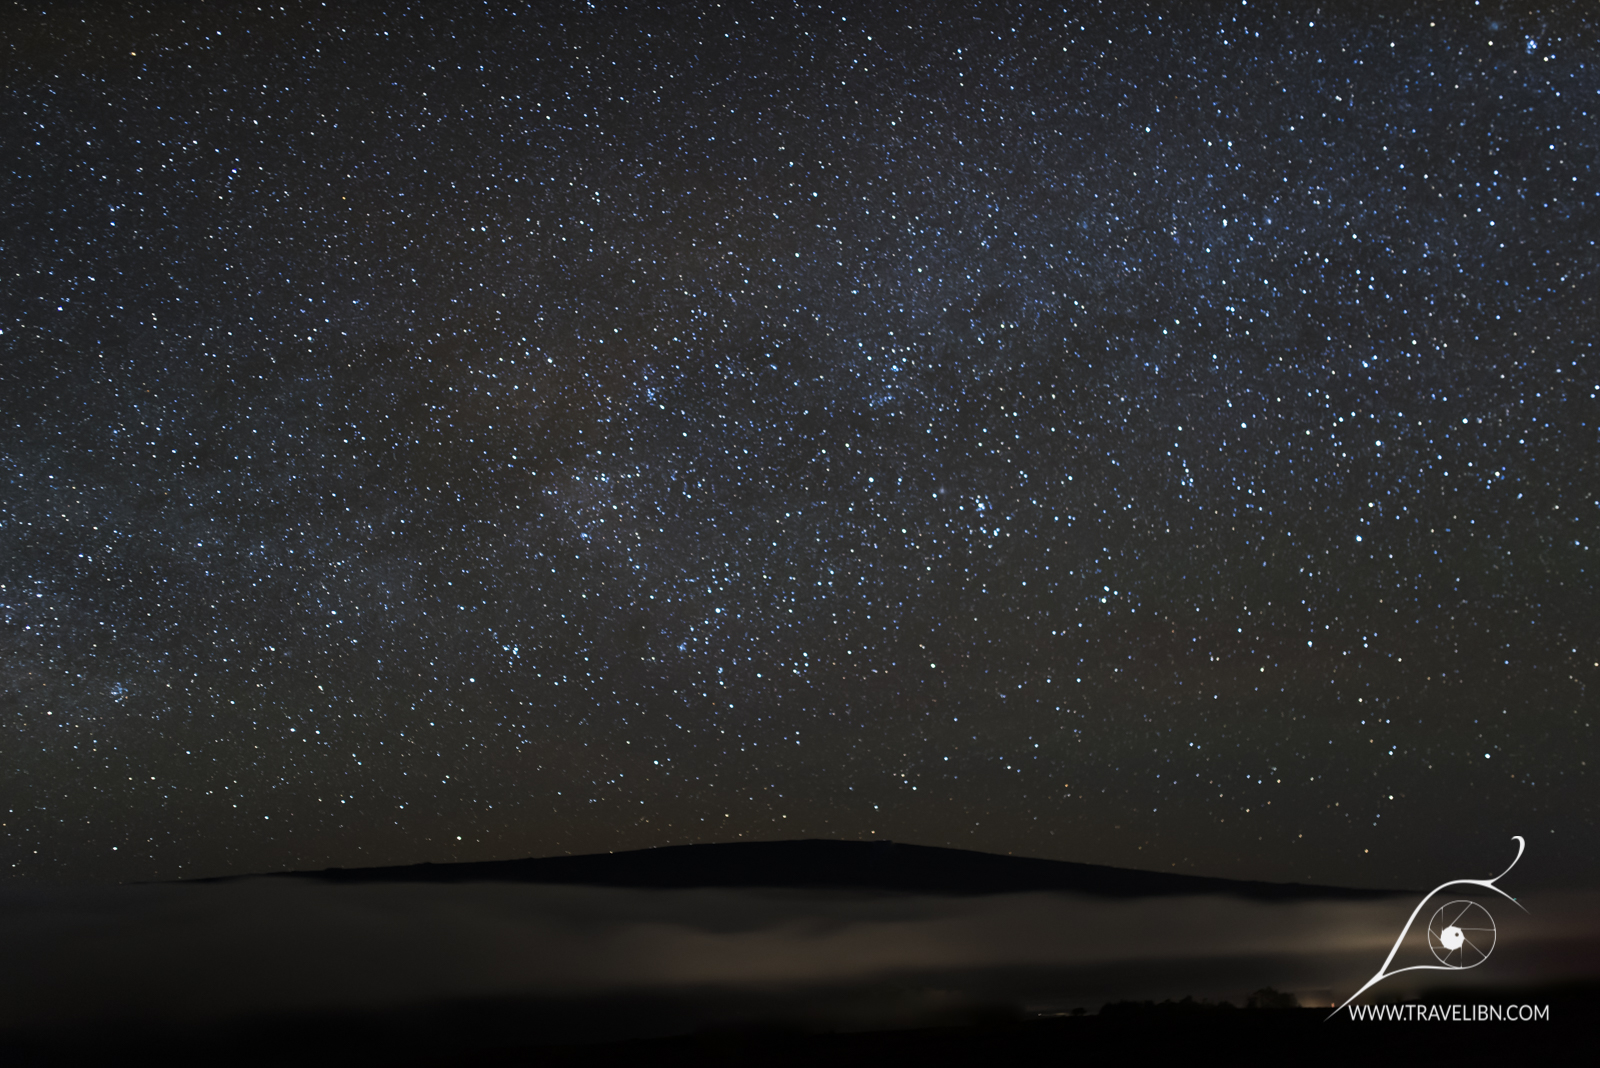 Mauna Loa, the world's largest shield volcano and the heaviest mountain on Earth, dwarfed by the night skies. As seen from atop Mauna Kea